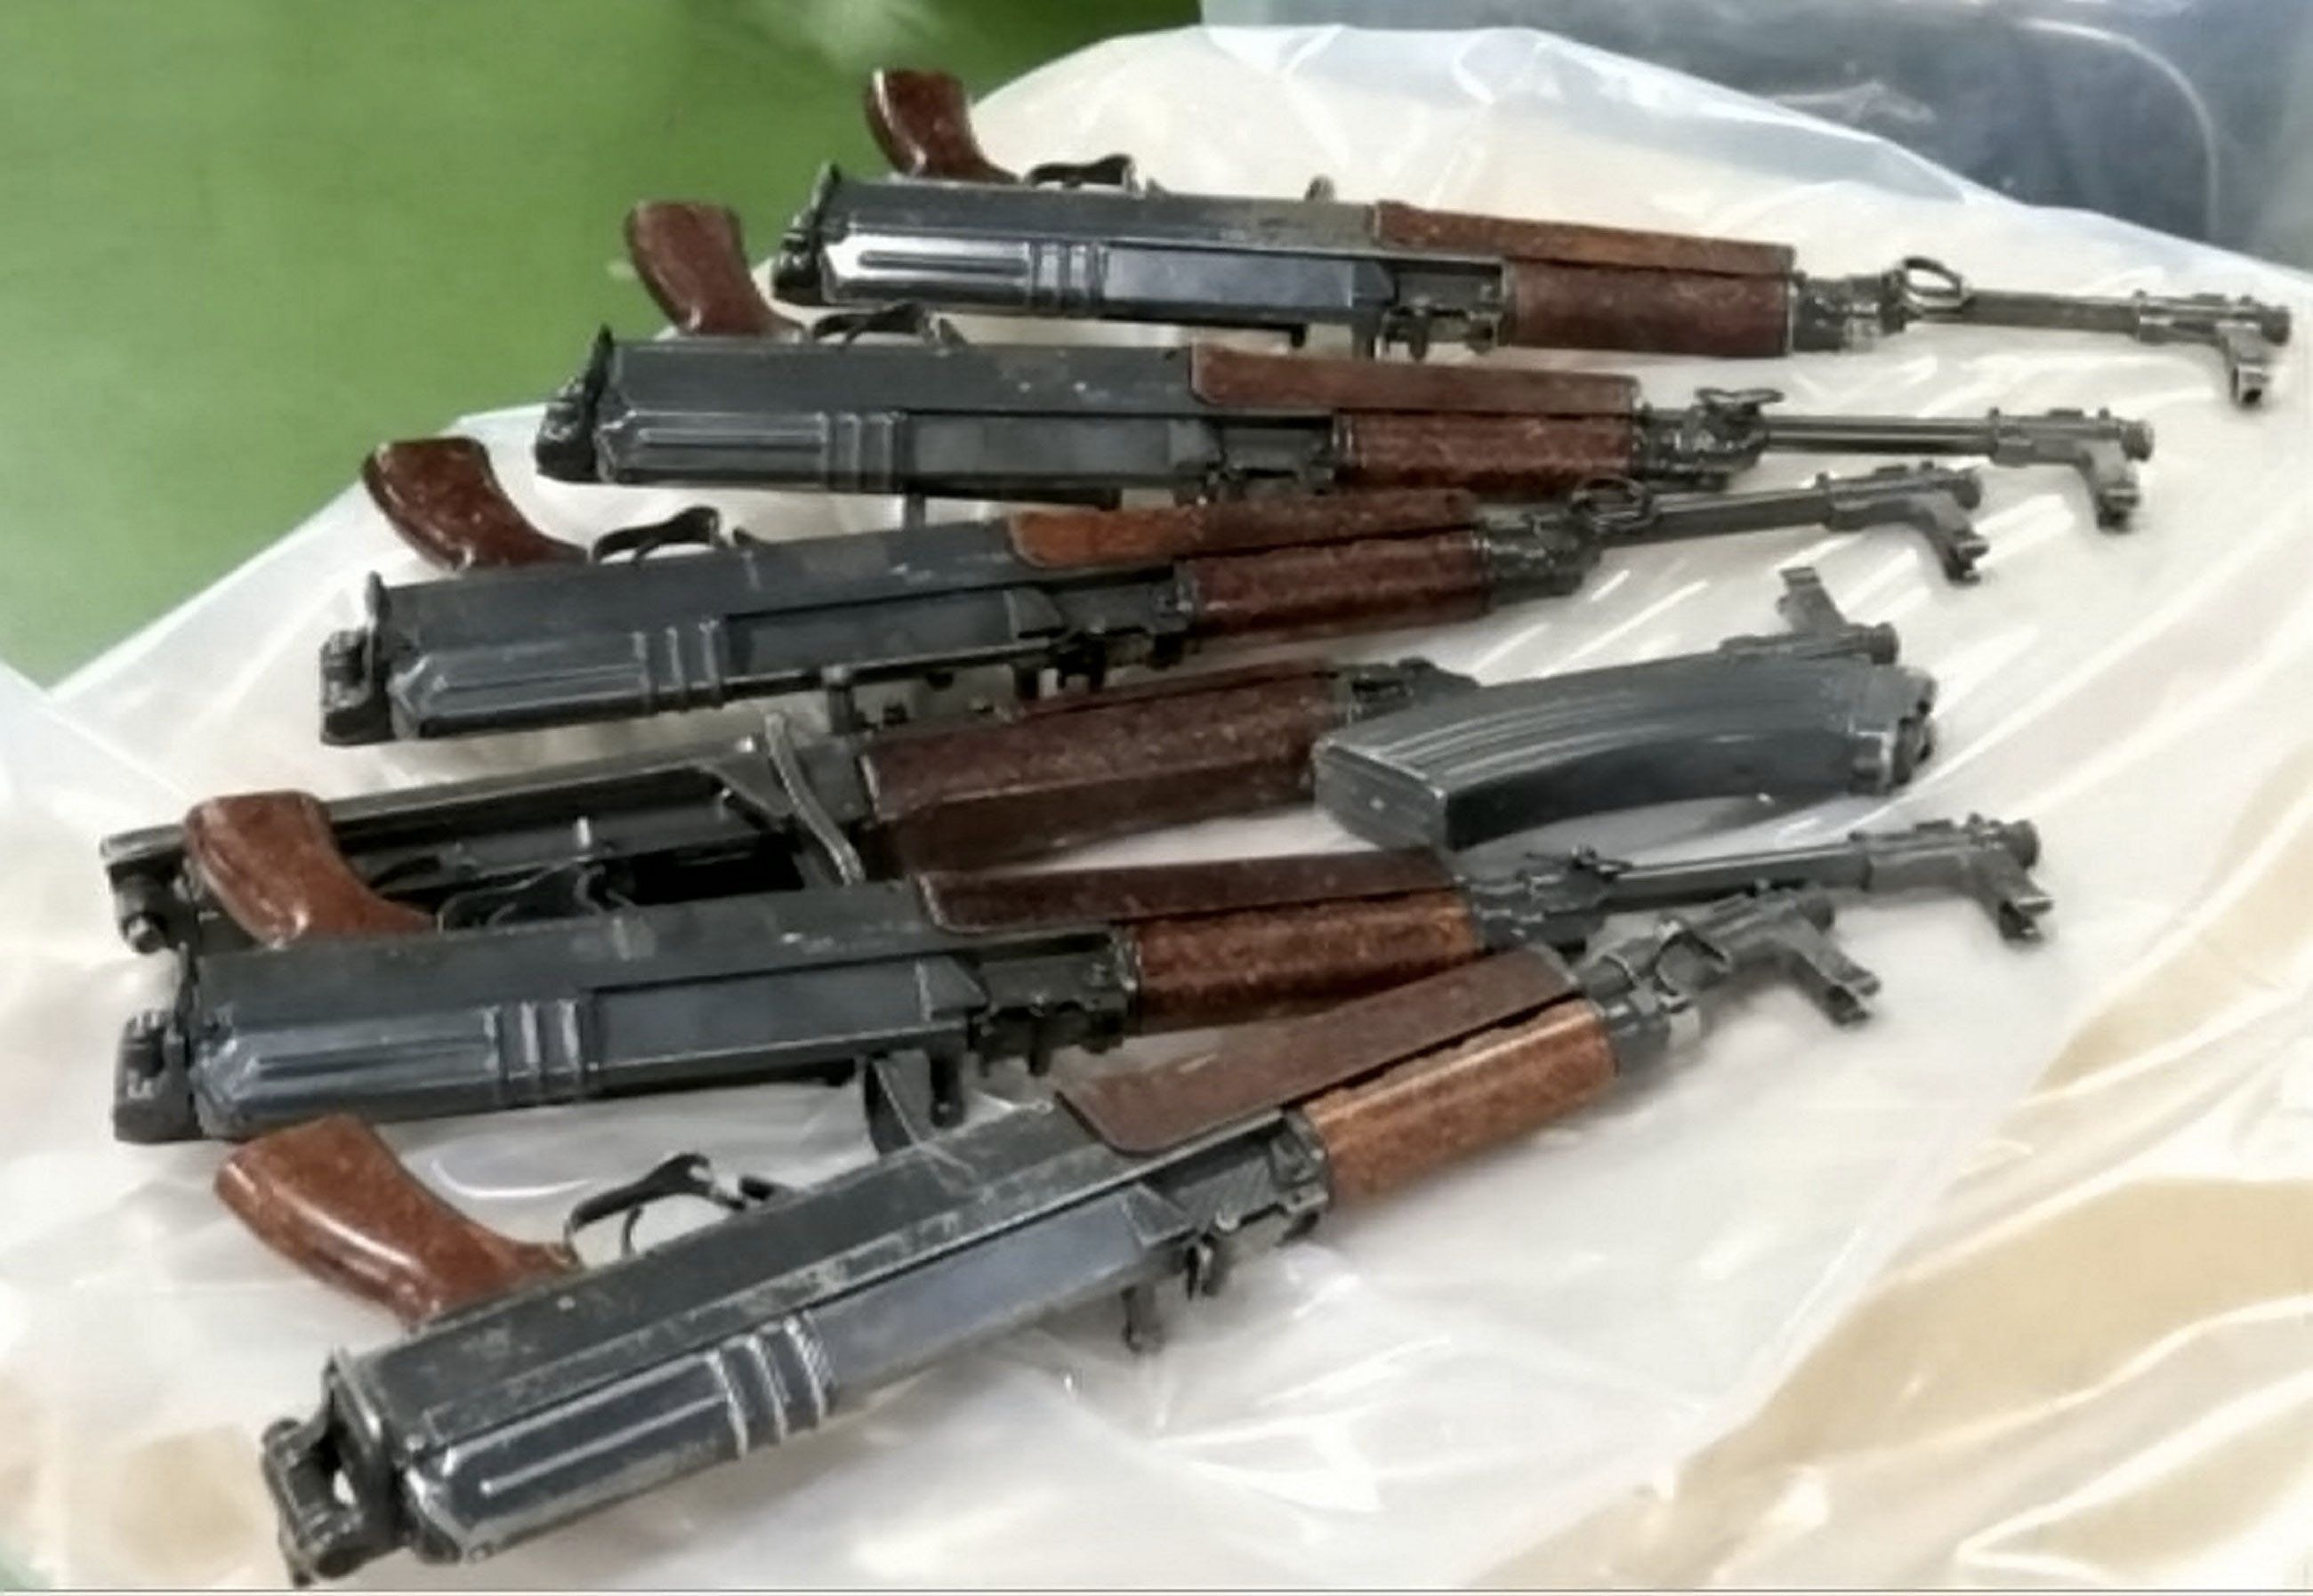 Some of the seized assault